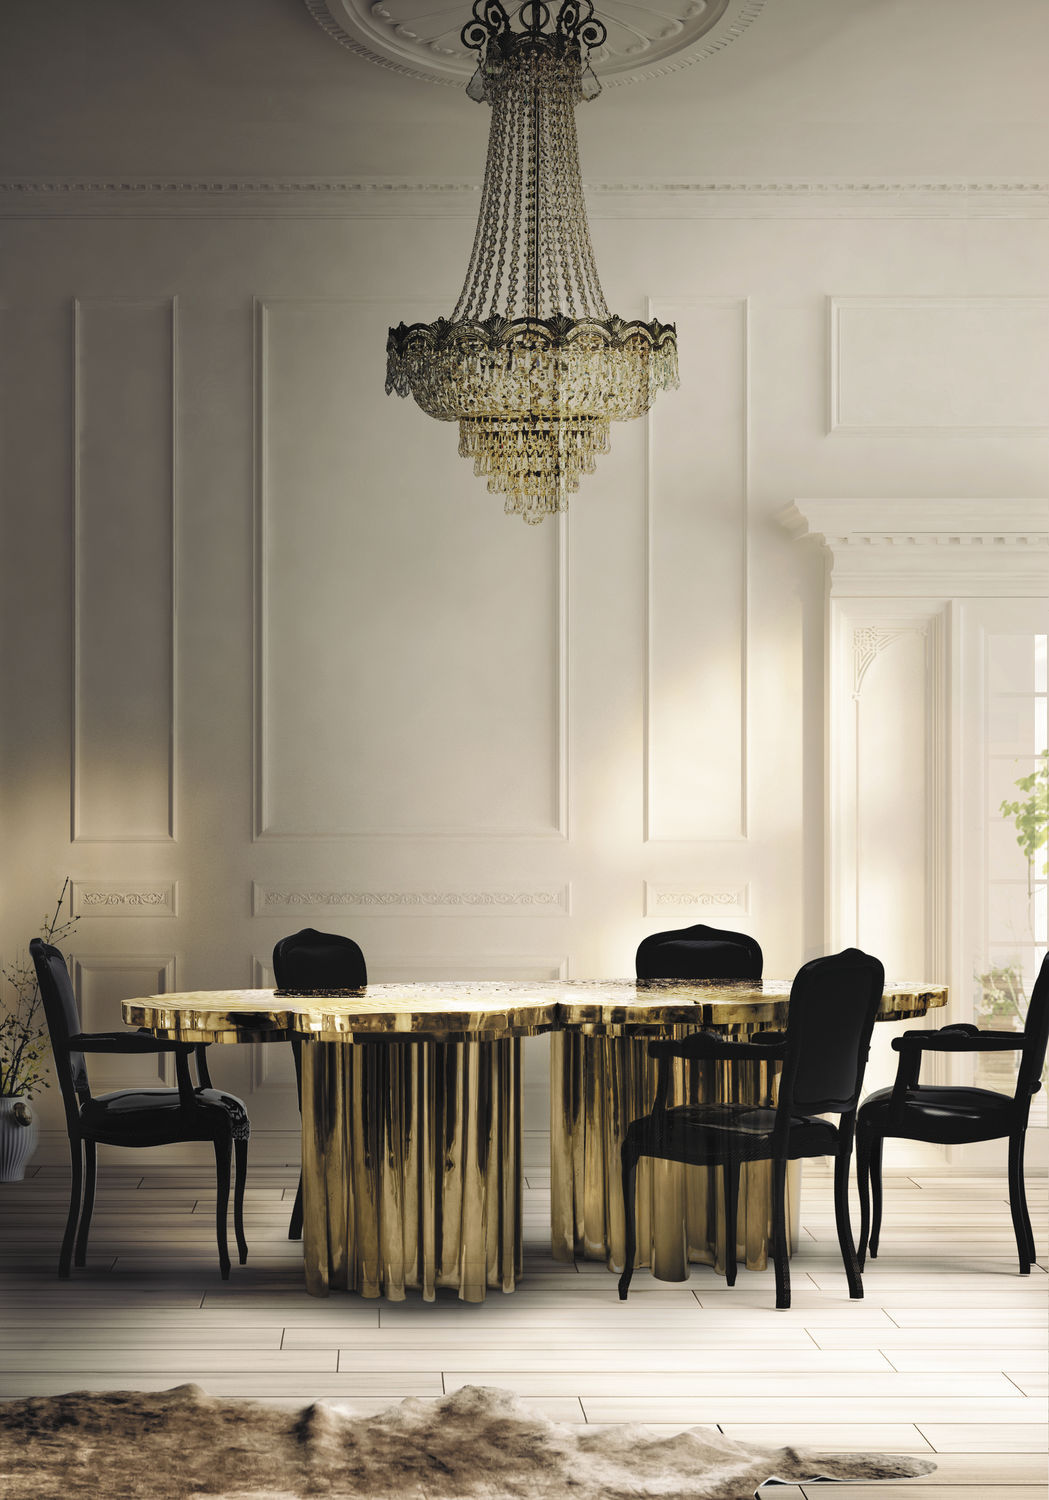 10 Majestic Dining Room Tables You Will Want To Have  Dining Room Tables 9 Majestic Dining Room Tables You Will Want To Have 10 Majestic Dining Room Tables You Will Want To Have6